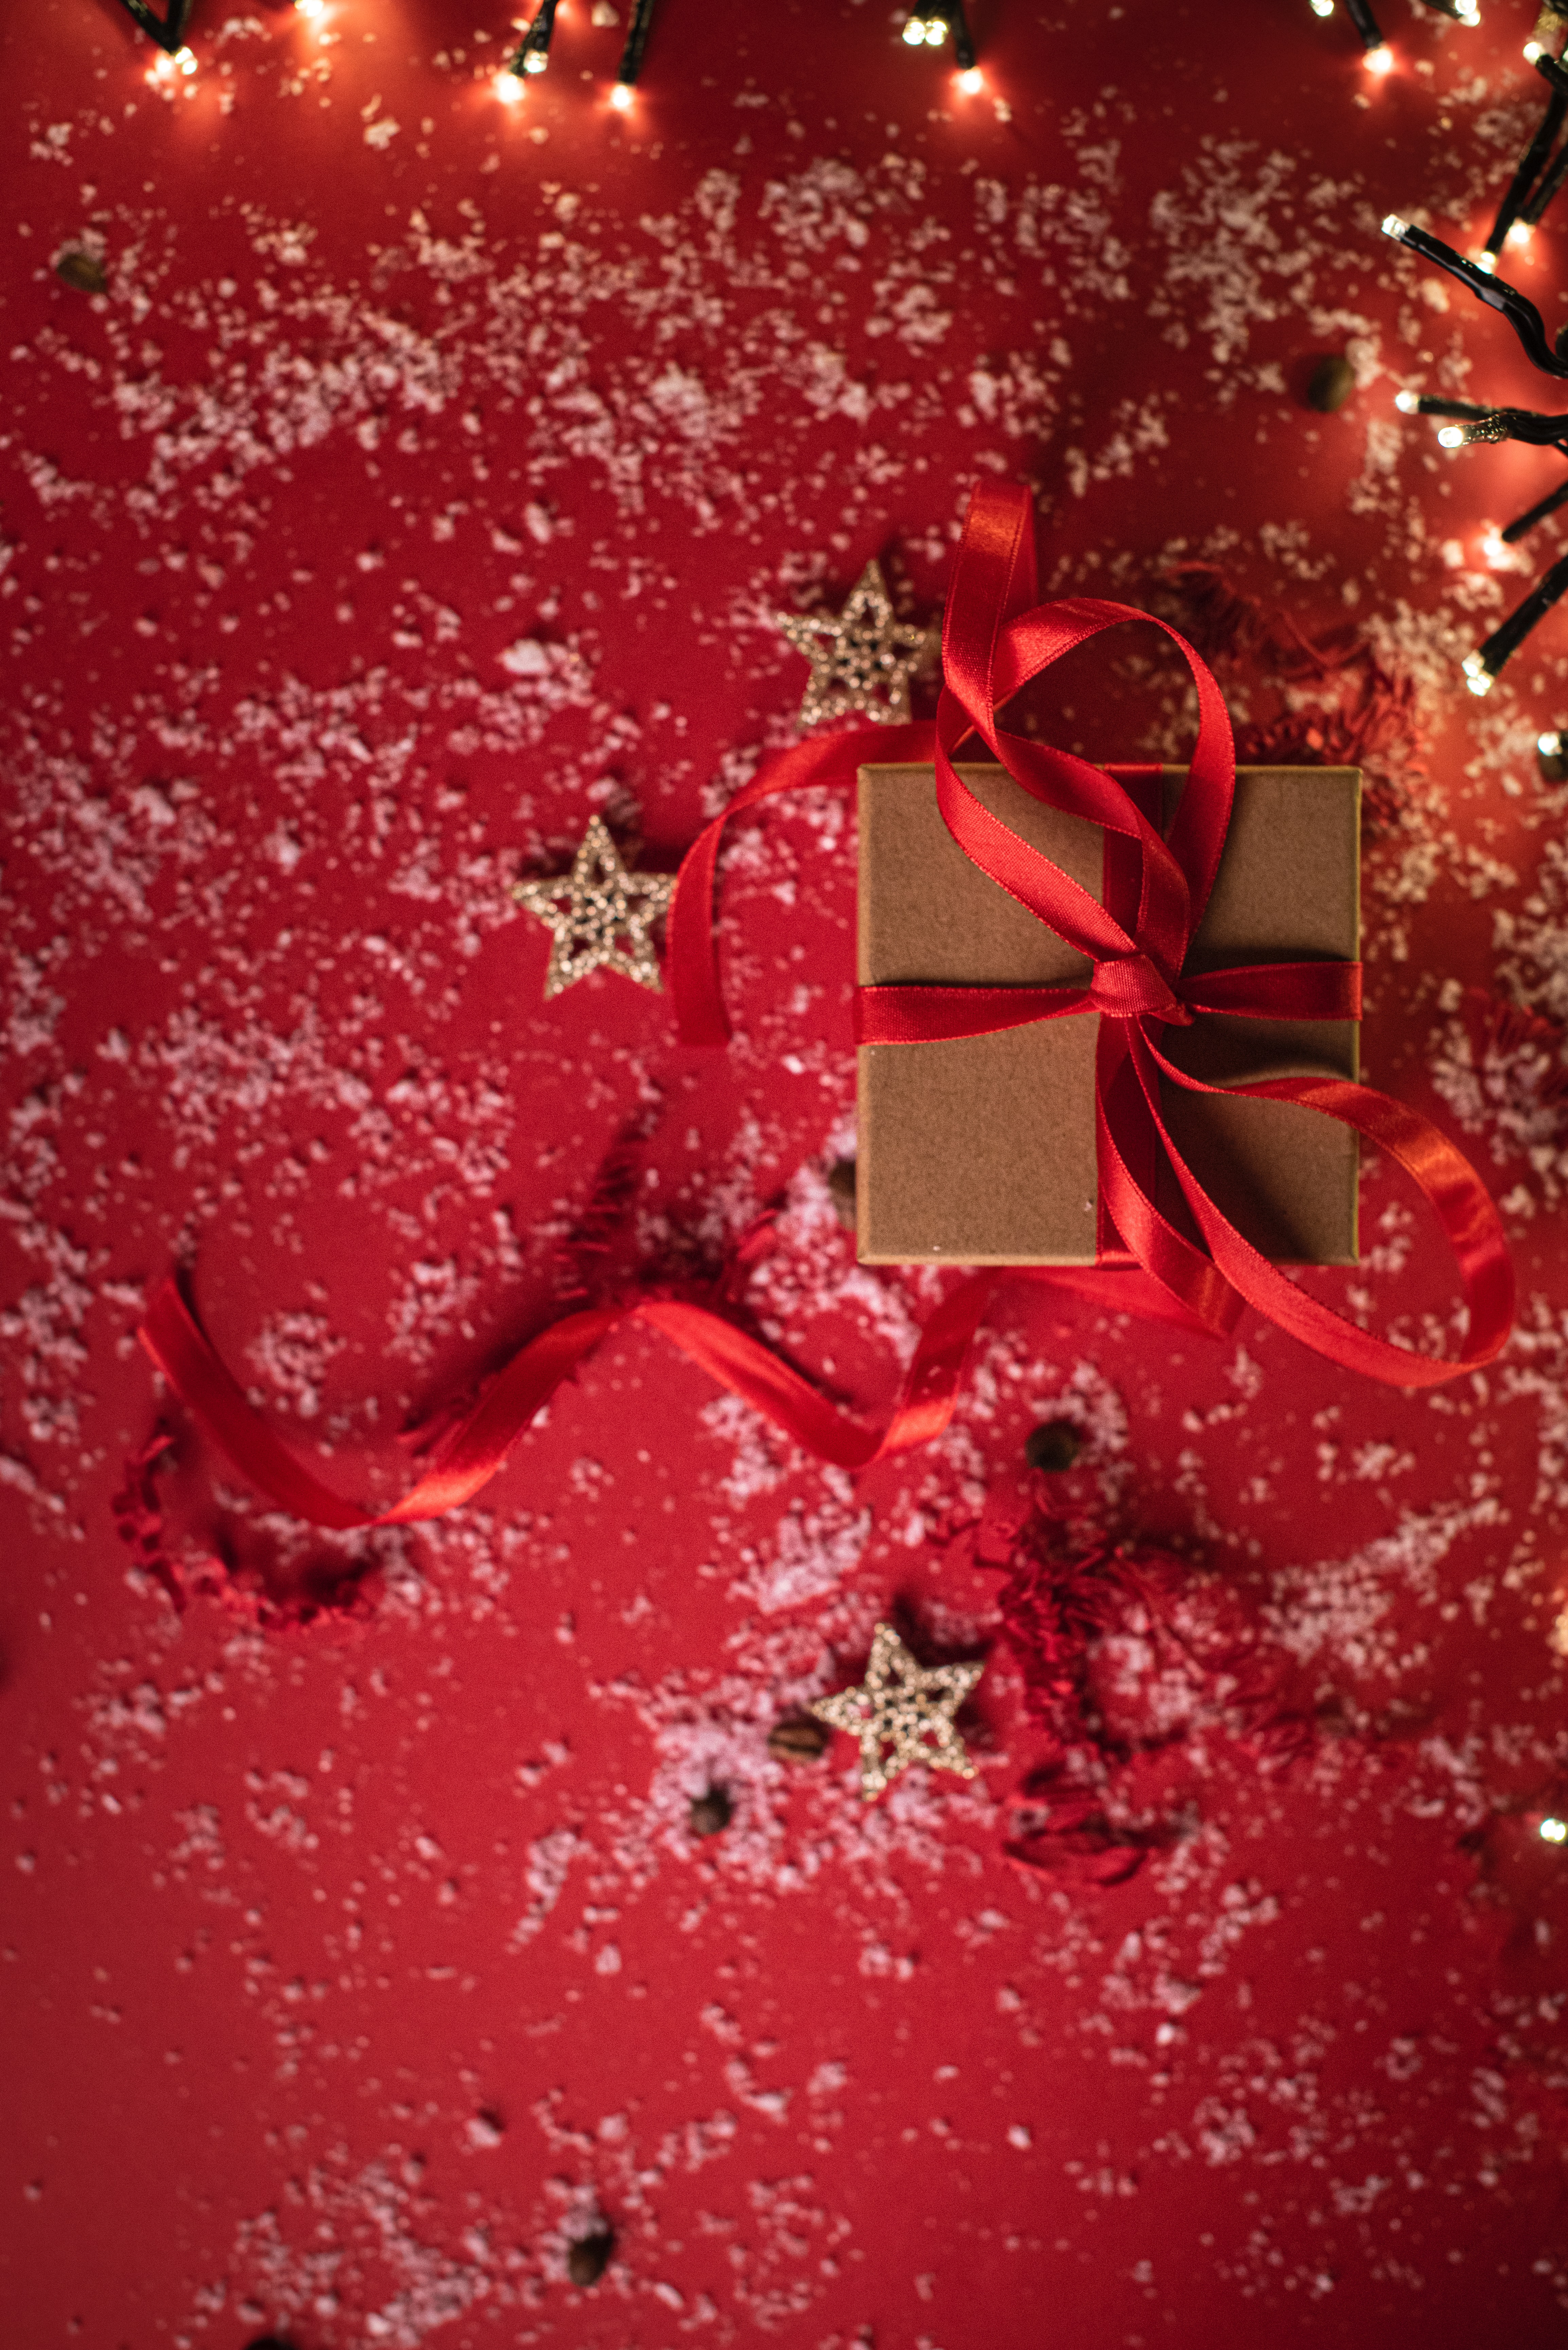 109797 download wallpaper Holidays, Present, Gift, Box, Tape, Snow, Holiday, Stars screensavers and pictures for free